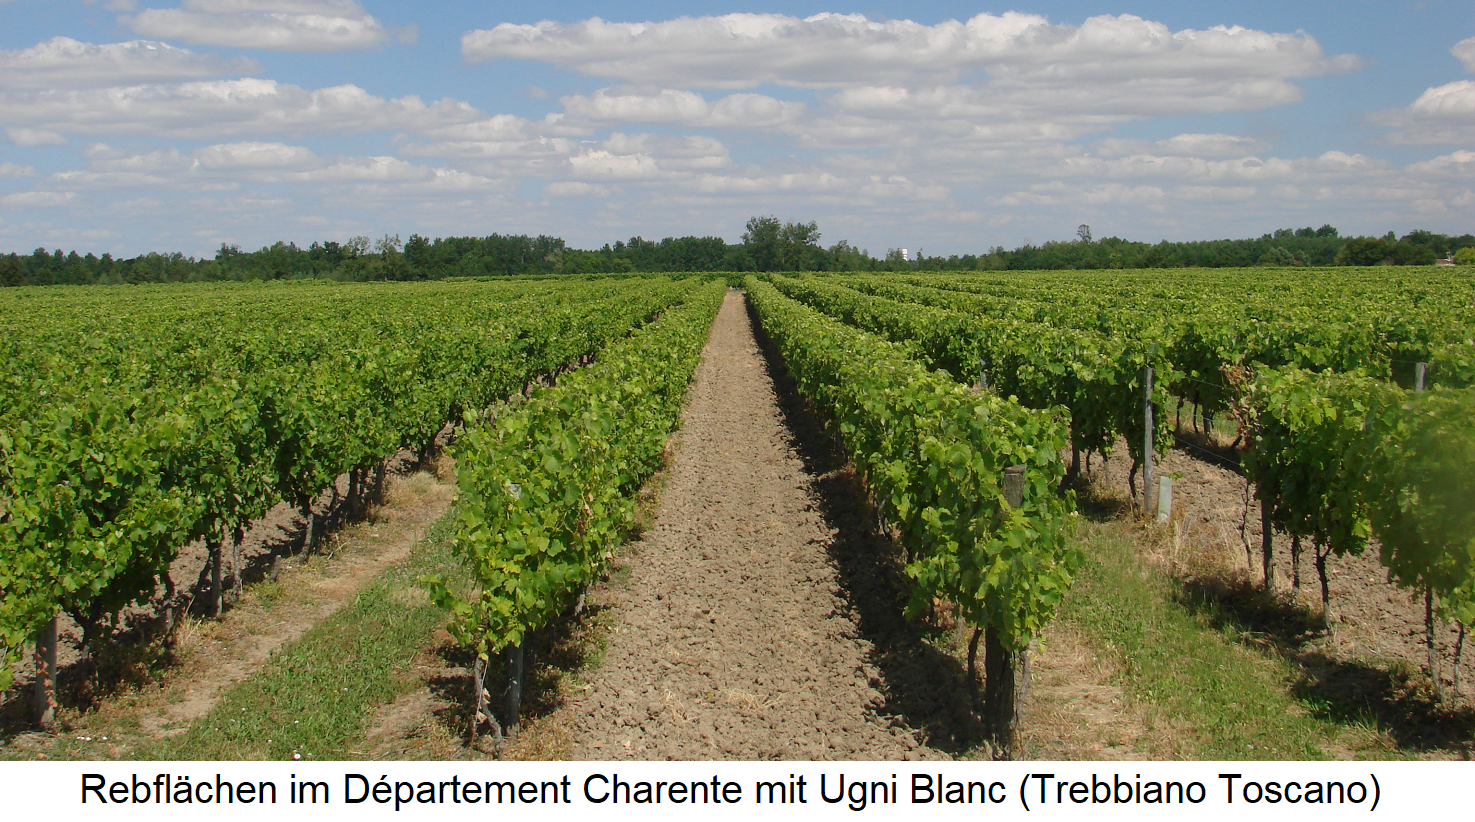 Cognac - Vineyards in the department of Charente with Ugni Blanc (Trebbiano Toscano)